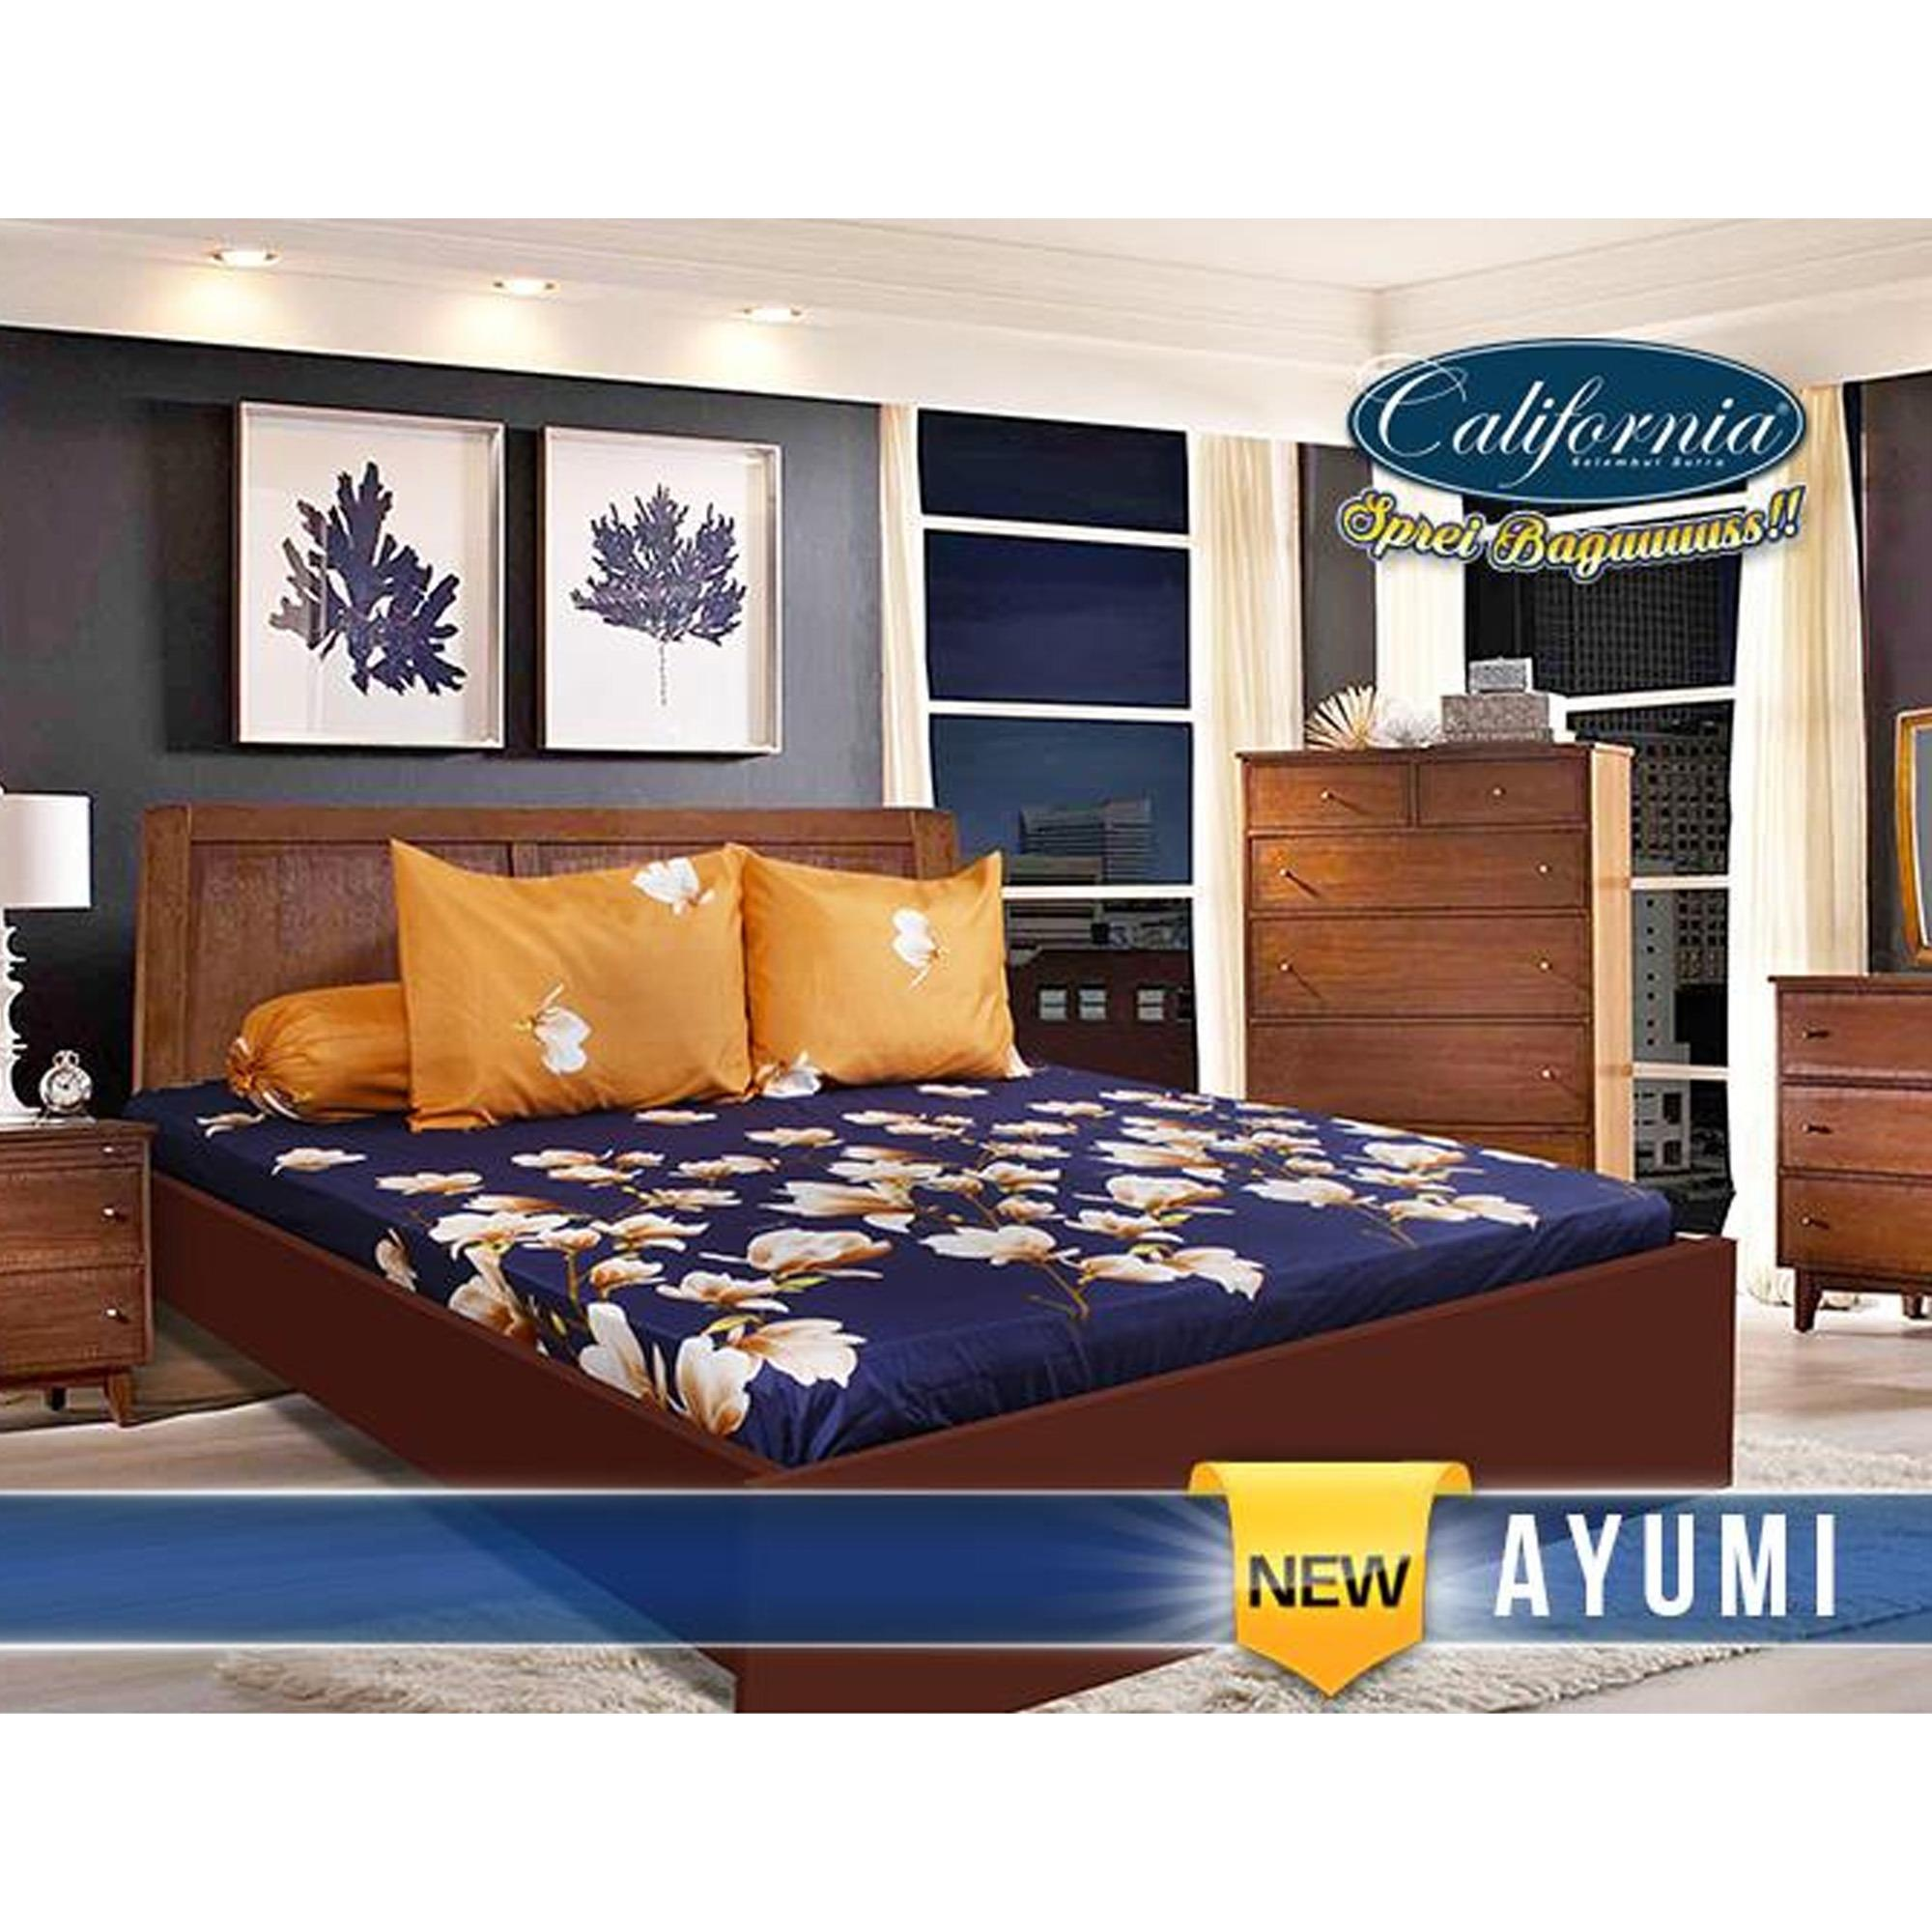 Buy Sell Cheapest California Sprei Set Best Quality Product Deals Seprei Bedcover Microtex 120x200cm Abu Ayumi